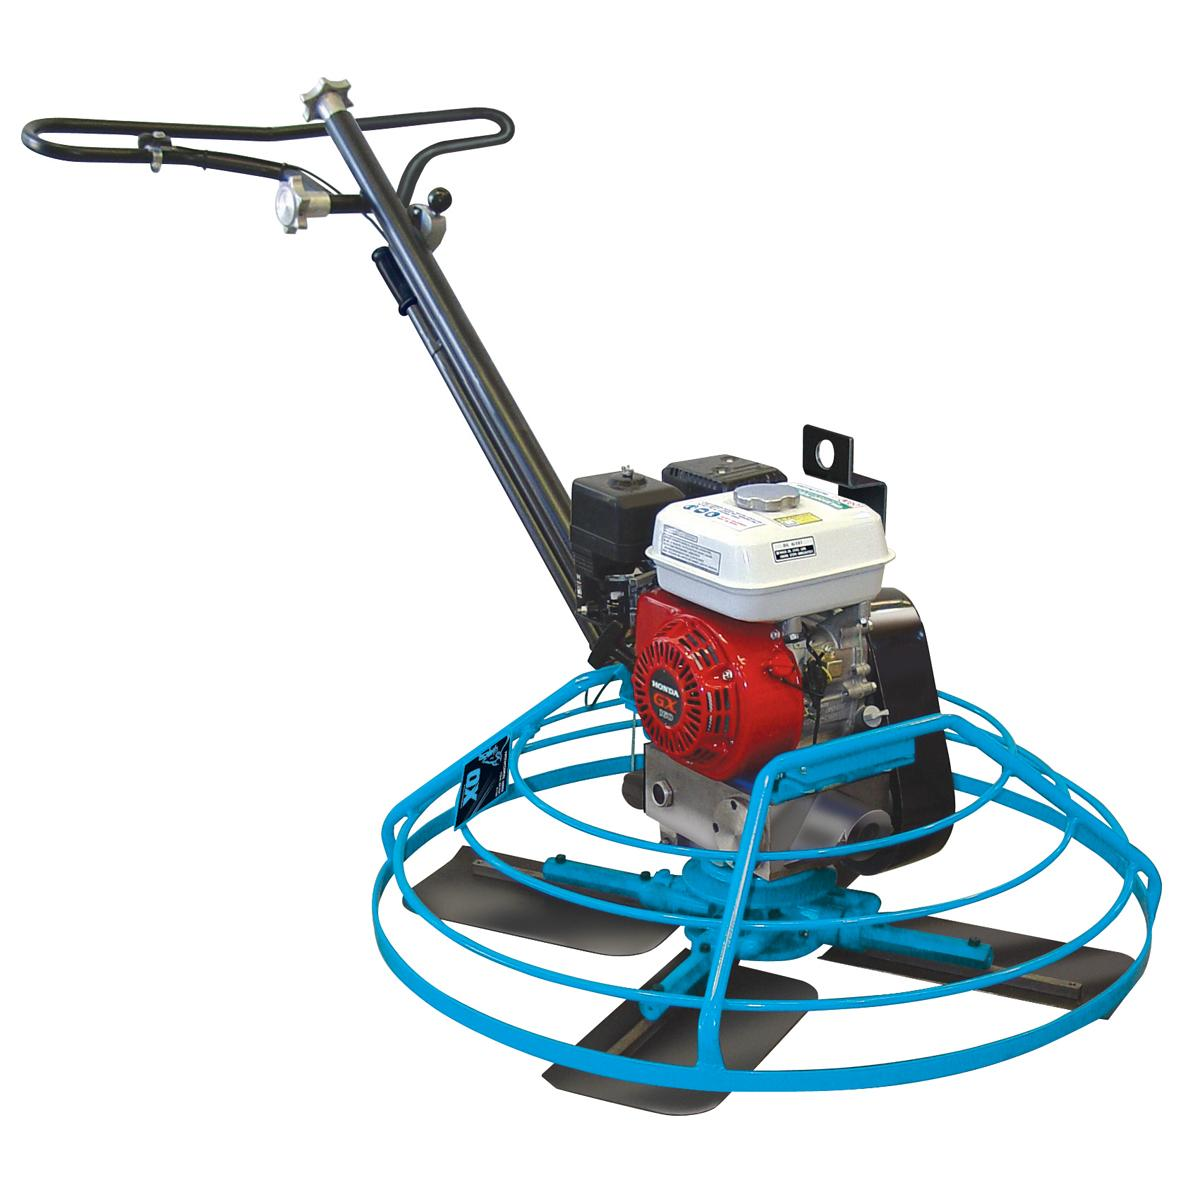 OX Prof 36 Trowelling Machine 5.5HP